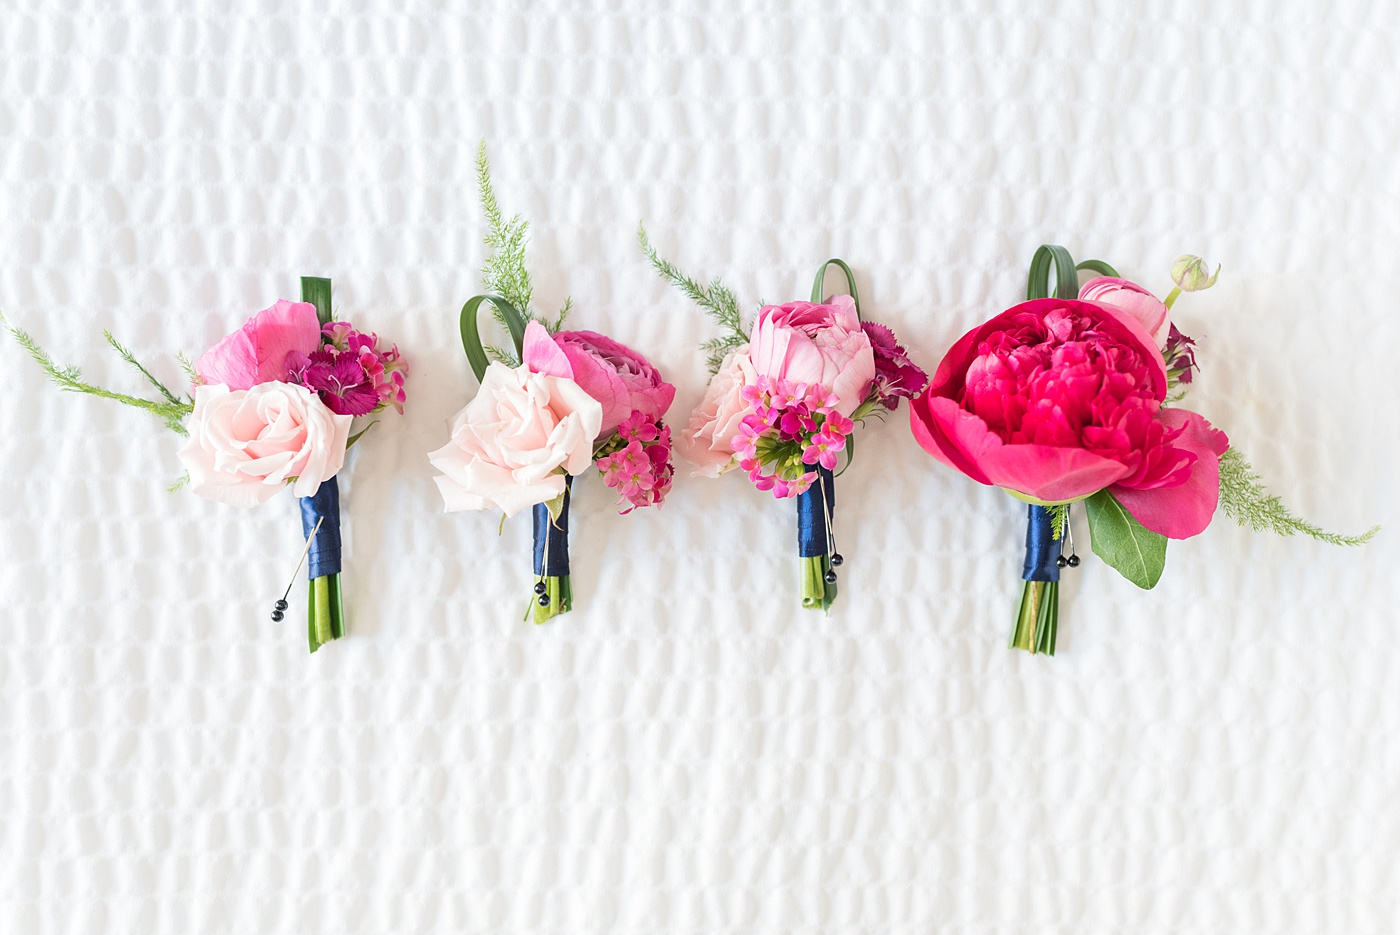 Raleigh wedding photographer, Mikkel Paige Photography, pictures of pink boutonnieres by The English Garden Raleigh for a wedding downtown in Raleigh, North Carolina at the event venue The Stockroom at 230. The bright colors and hot pink boutonnieres were perfect for a spring May celebration. #MikkelPaige #DowntownRaleigh #RaleighWedding #RaleighVenue #TheStockroomat230 #capitalcity #groomsmen #boutonnieres #bluesuits #floralties #groomstyle